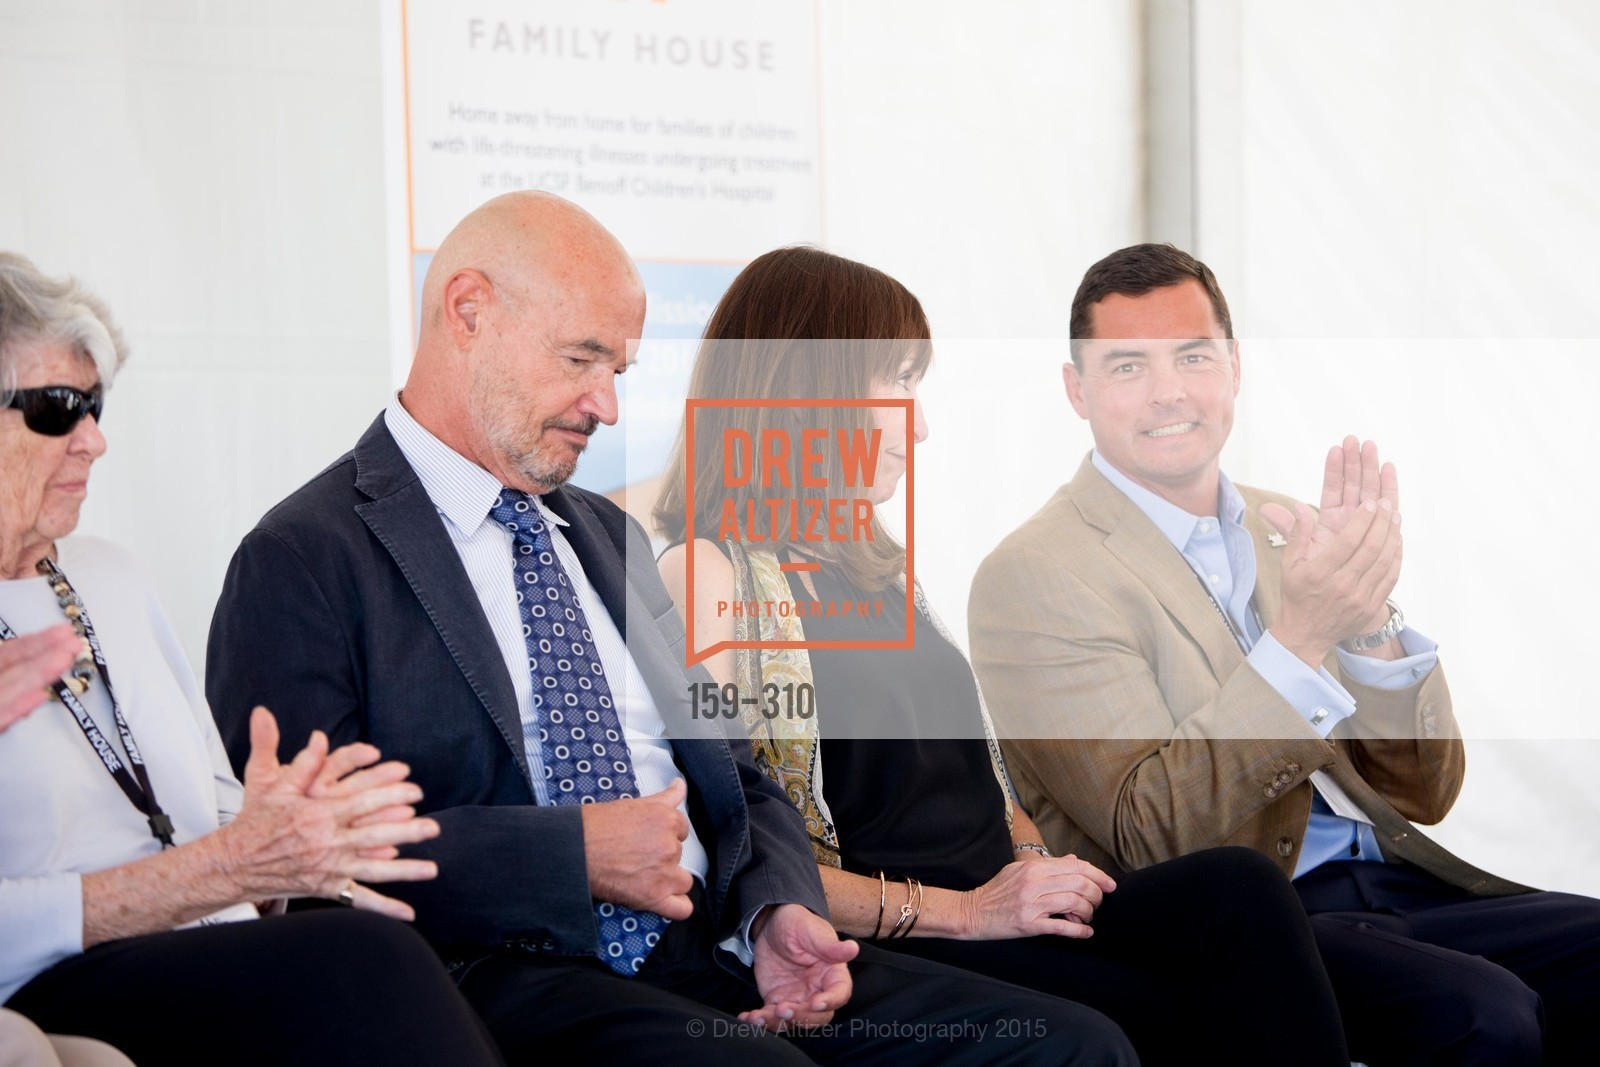 Debbie Ablin, Stephen Grand, Nancy Grand, Scott Miller, Nancy and Stephen Grand Family House Topping Off Ceremony, Family House. 540 Mission Bay Blvd, September 24th, 2015,Drew Altizer, Drew Altizer Photography, full-service event agency, private events, San Francisco photographer, photographer California